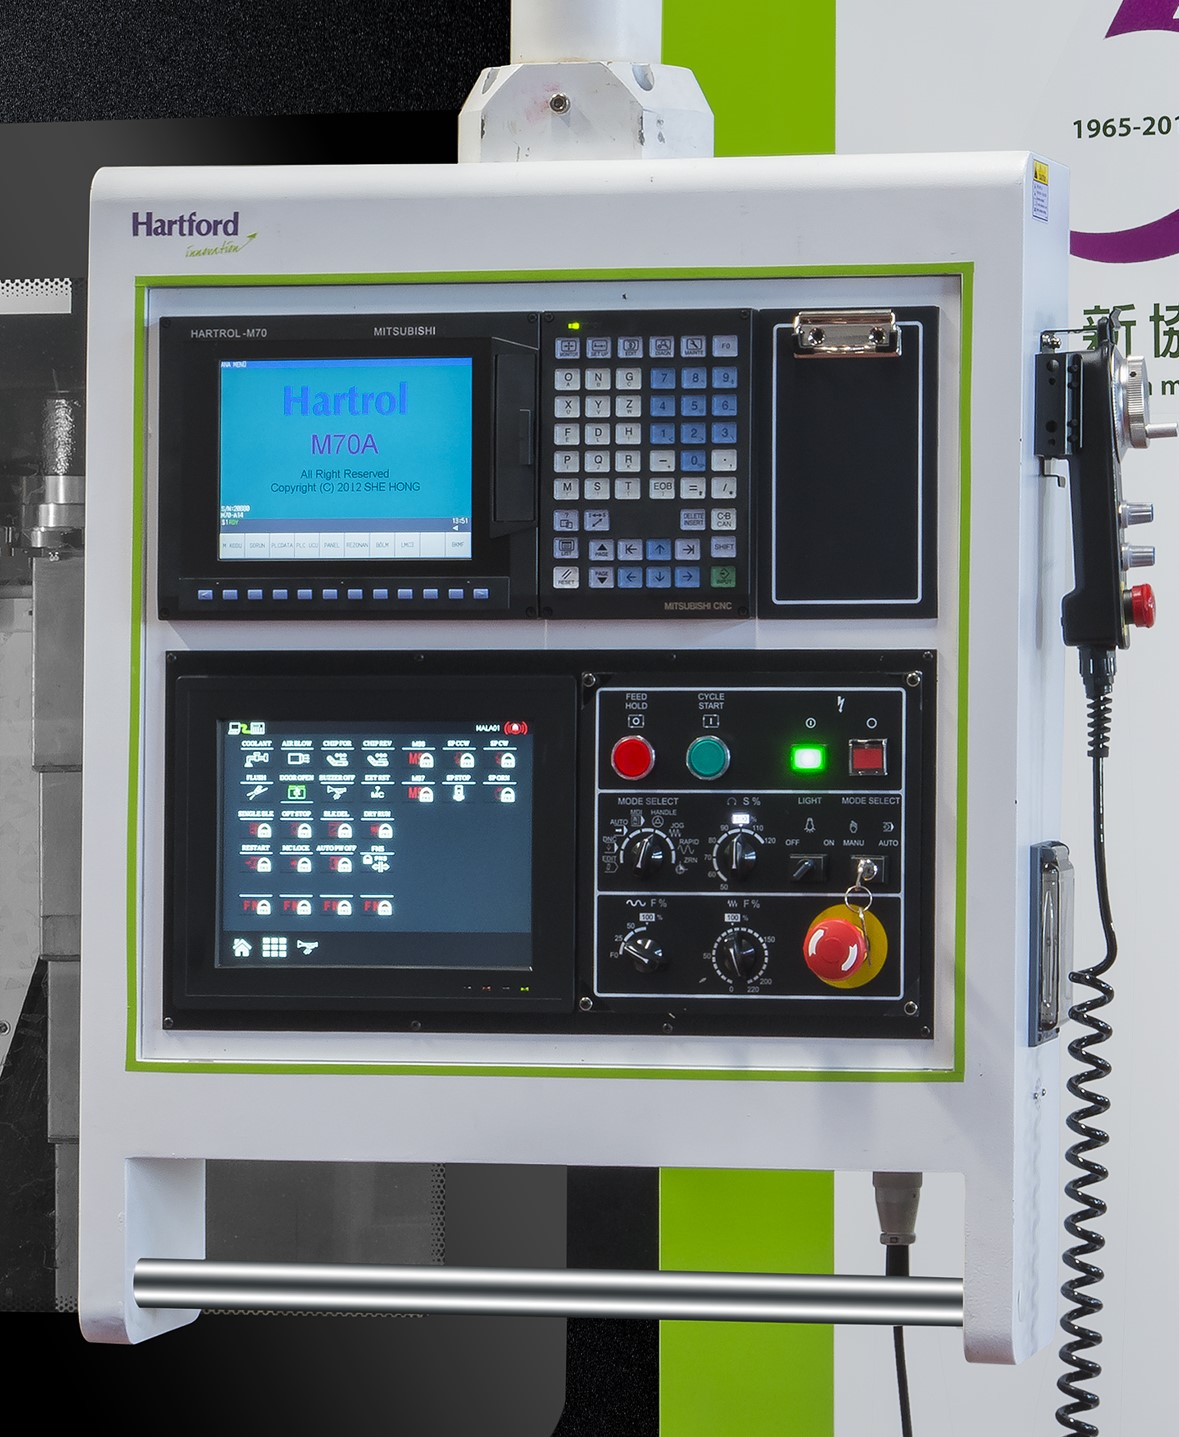 Controller Upgrades  - Fanuc Function: AI, Contour Control-- II, Preread ahead 200 Blocks;  - Fanuc Function: Data server,1 gig of memory;   - NANO smoothing (Includes Contour control II)  - Polar coordinate, command (J818)  - Automatic Power Off, Included